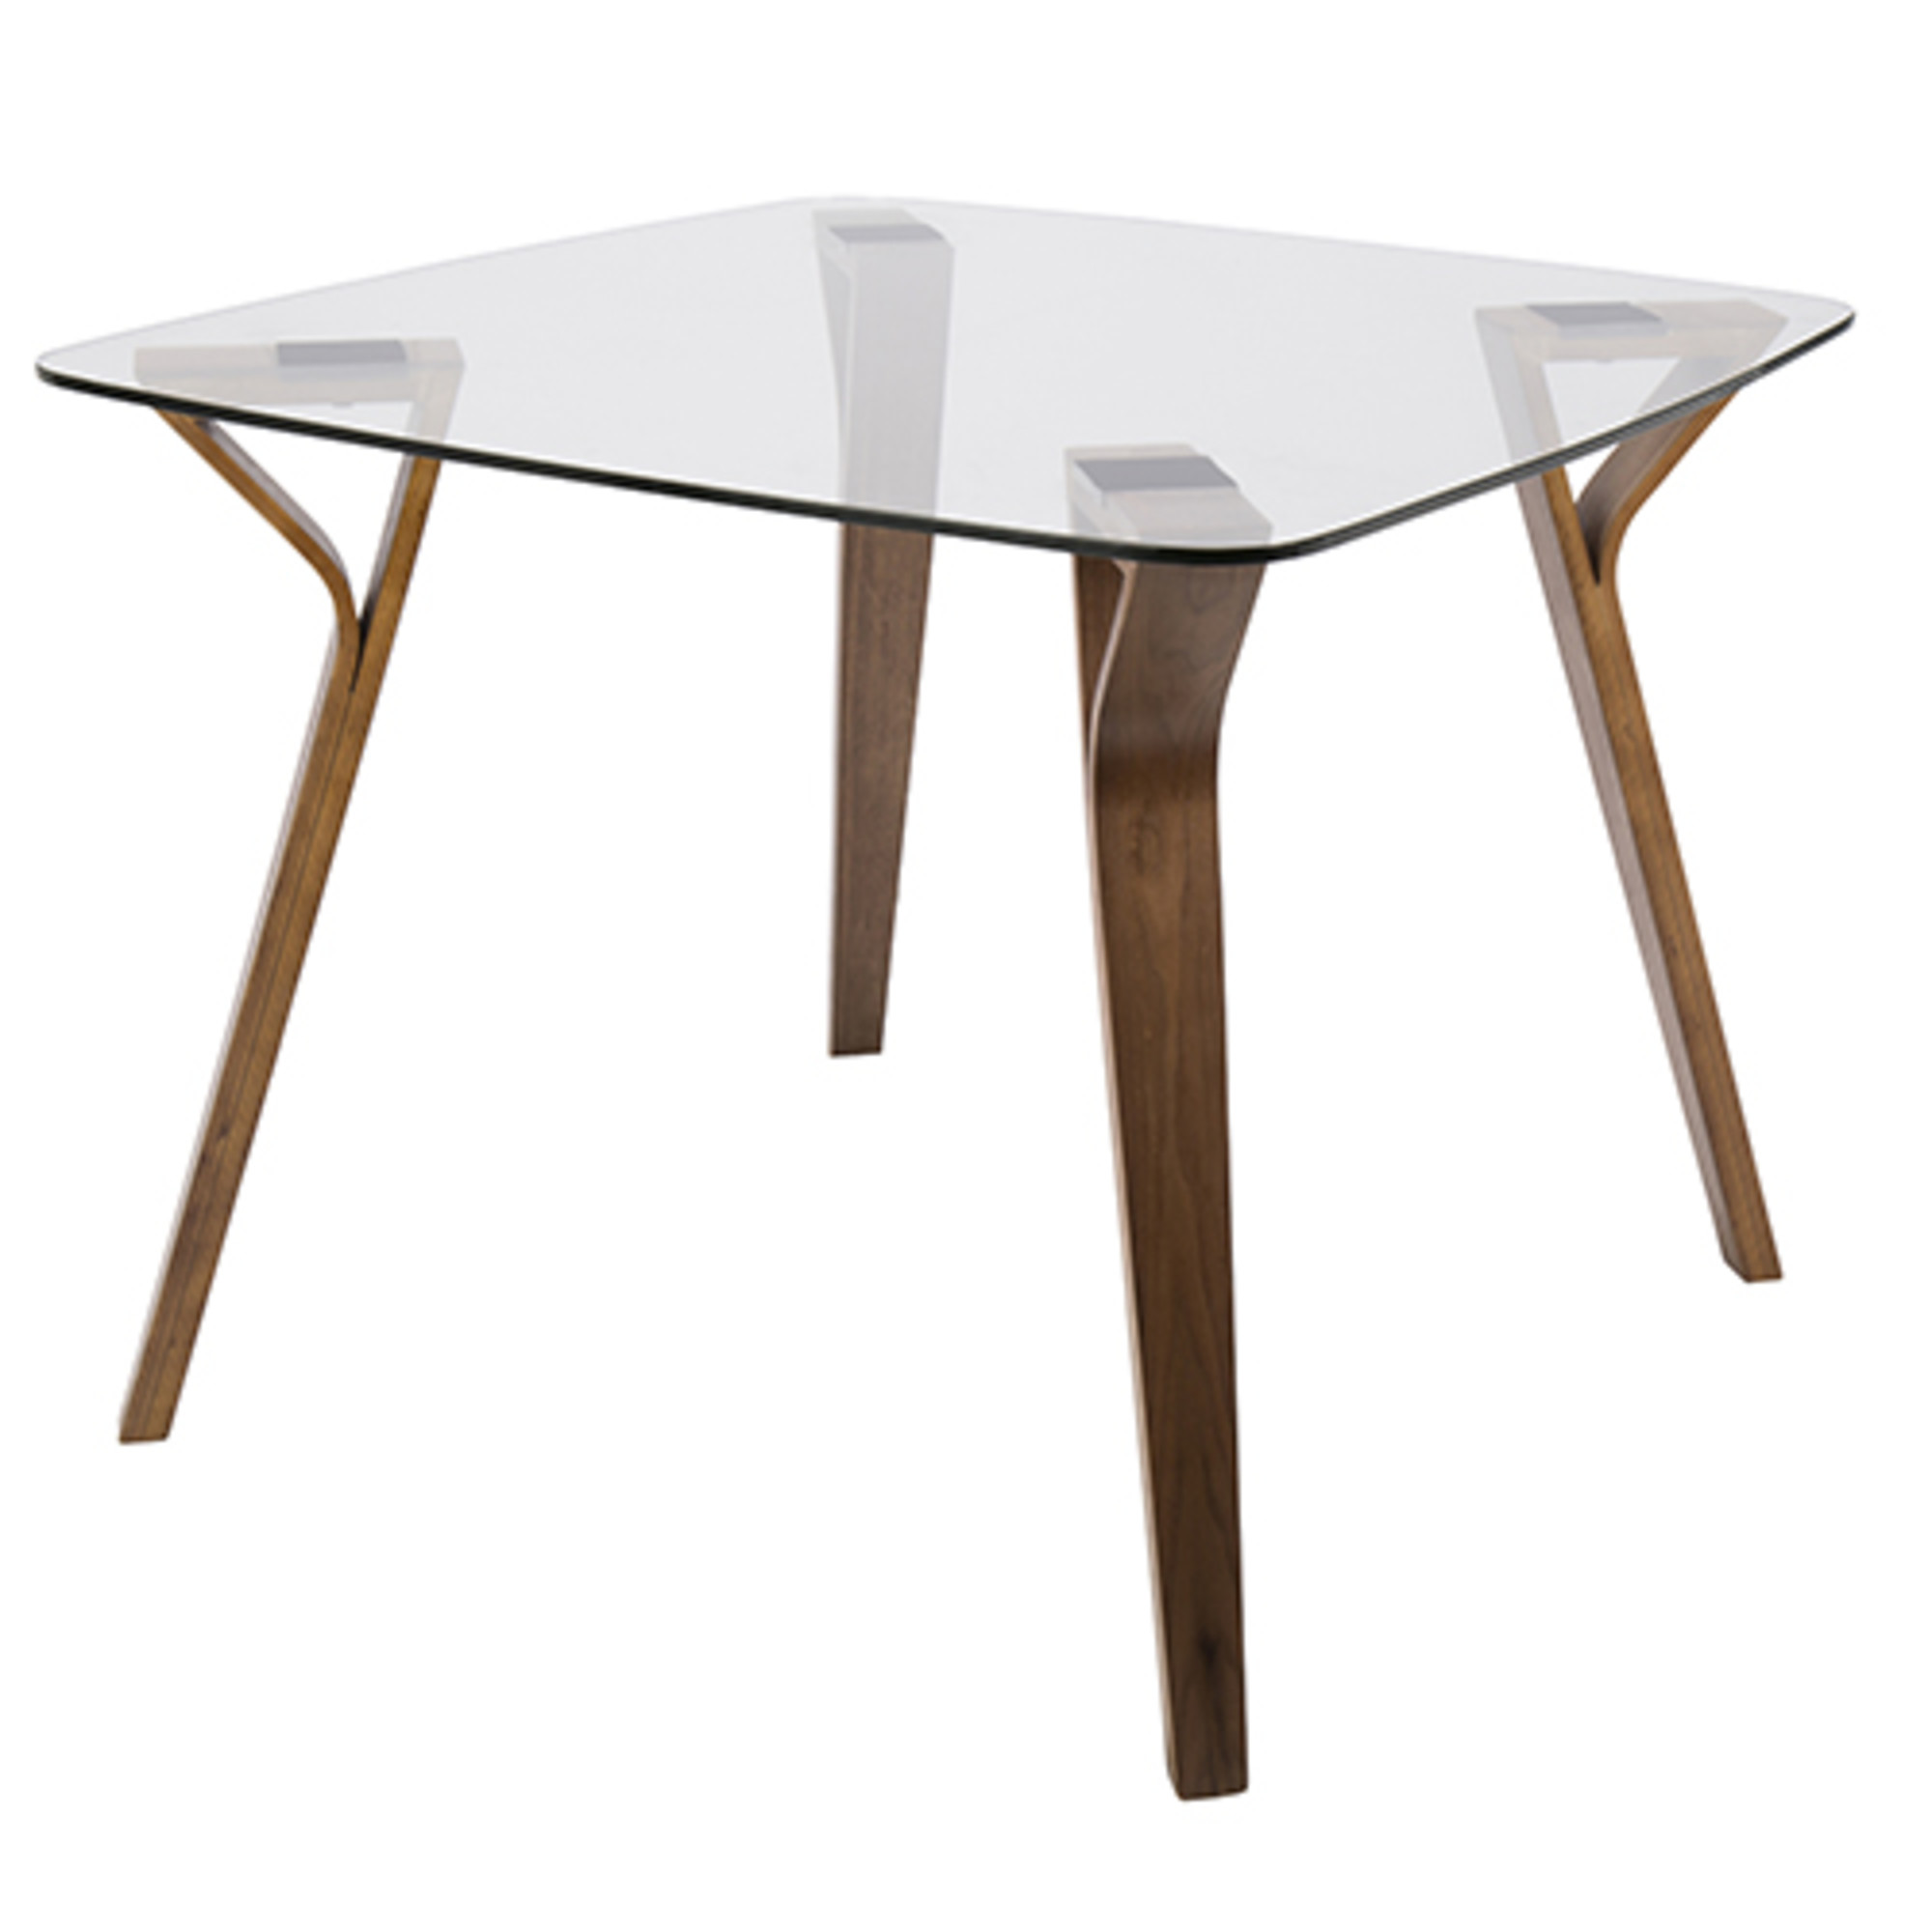 Excellent Folia Mid Century Modern Dinette Table In Walnut Glass Pdpeps Interior Chair Design Pdpepsorg